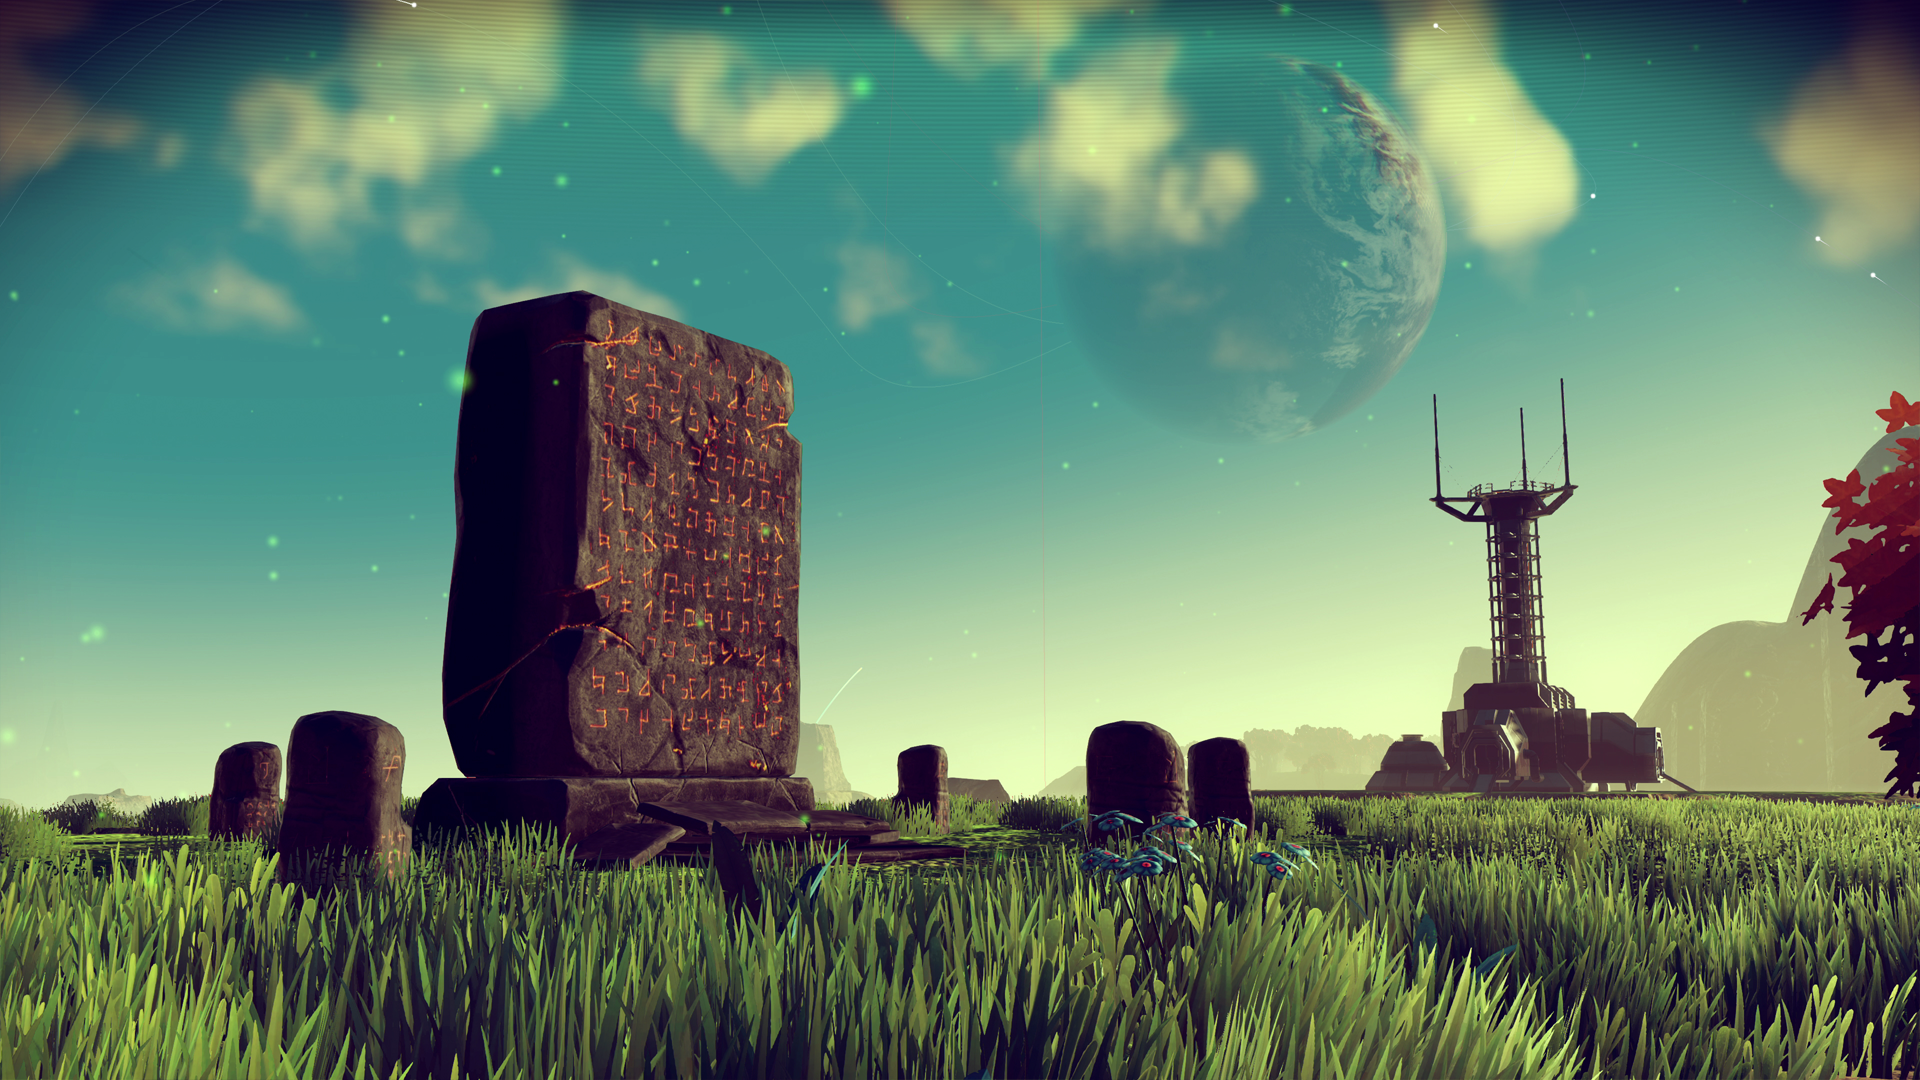 No Man's Sky update: Game receives another patch as developers work to stop people getting lost in space